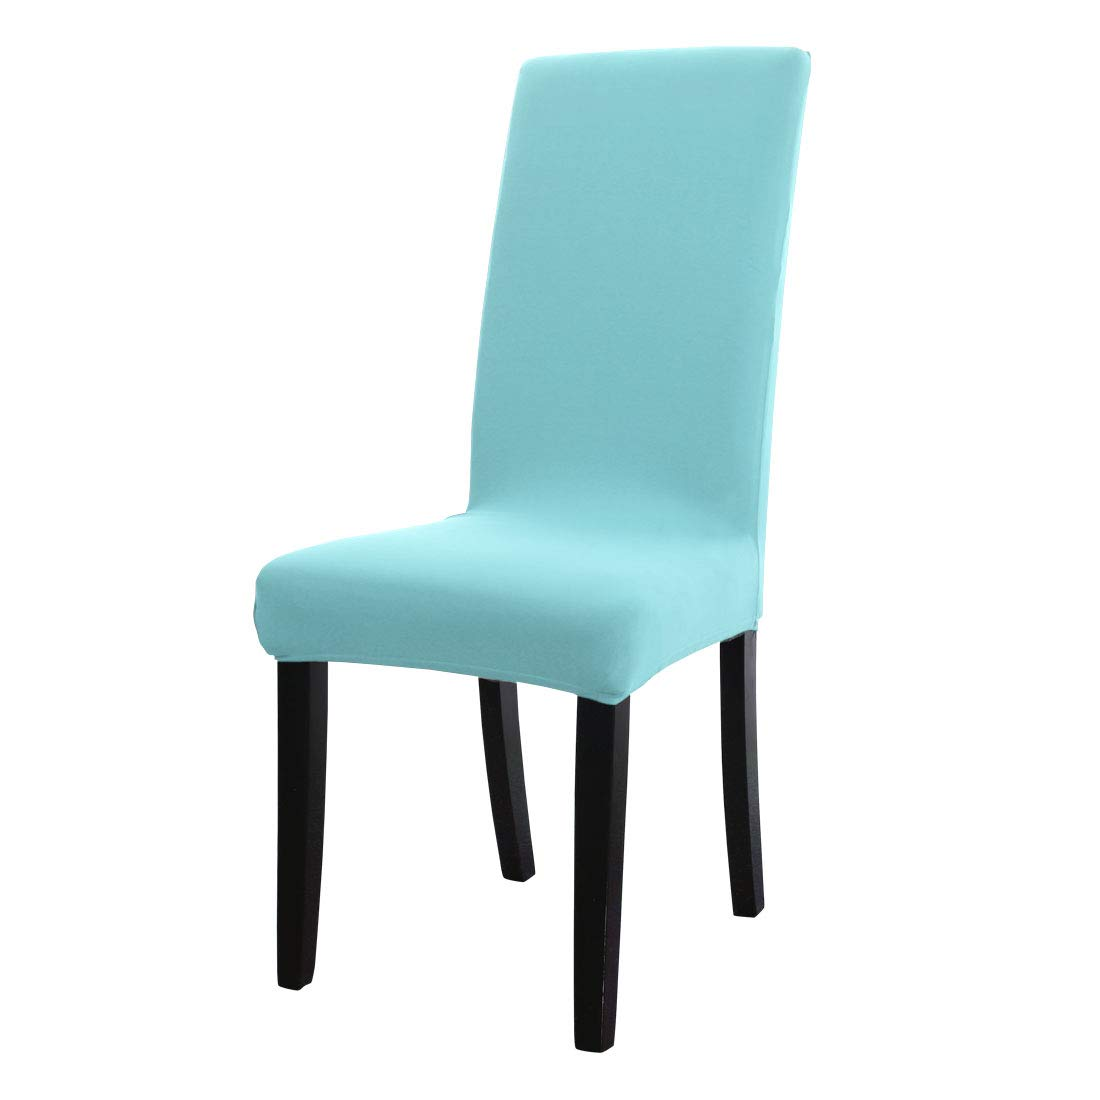 uxcell Dining Chair Cover,Stretch Bar Stool Slipcover Kitchen Chair Protector Spandex Short Chair Seat Cover for Home Decorative/Dining Room/Party/Wedding Medium,Teal